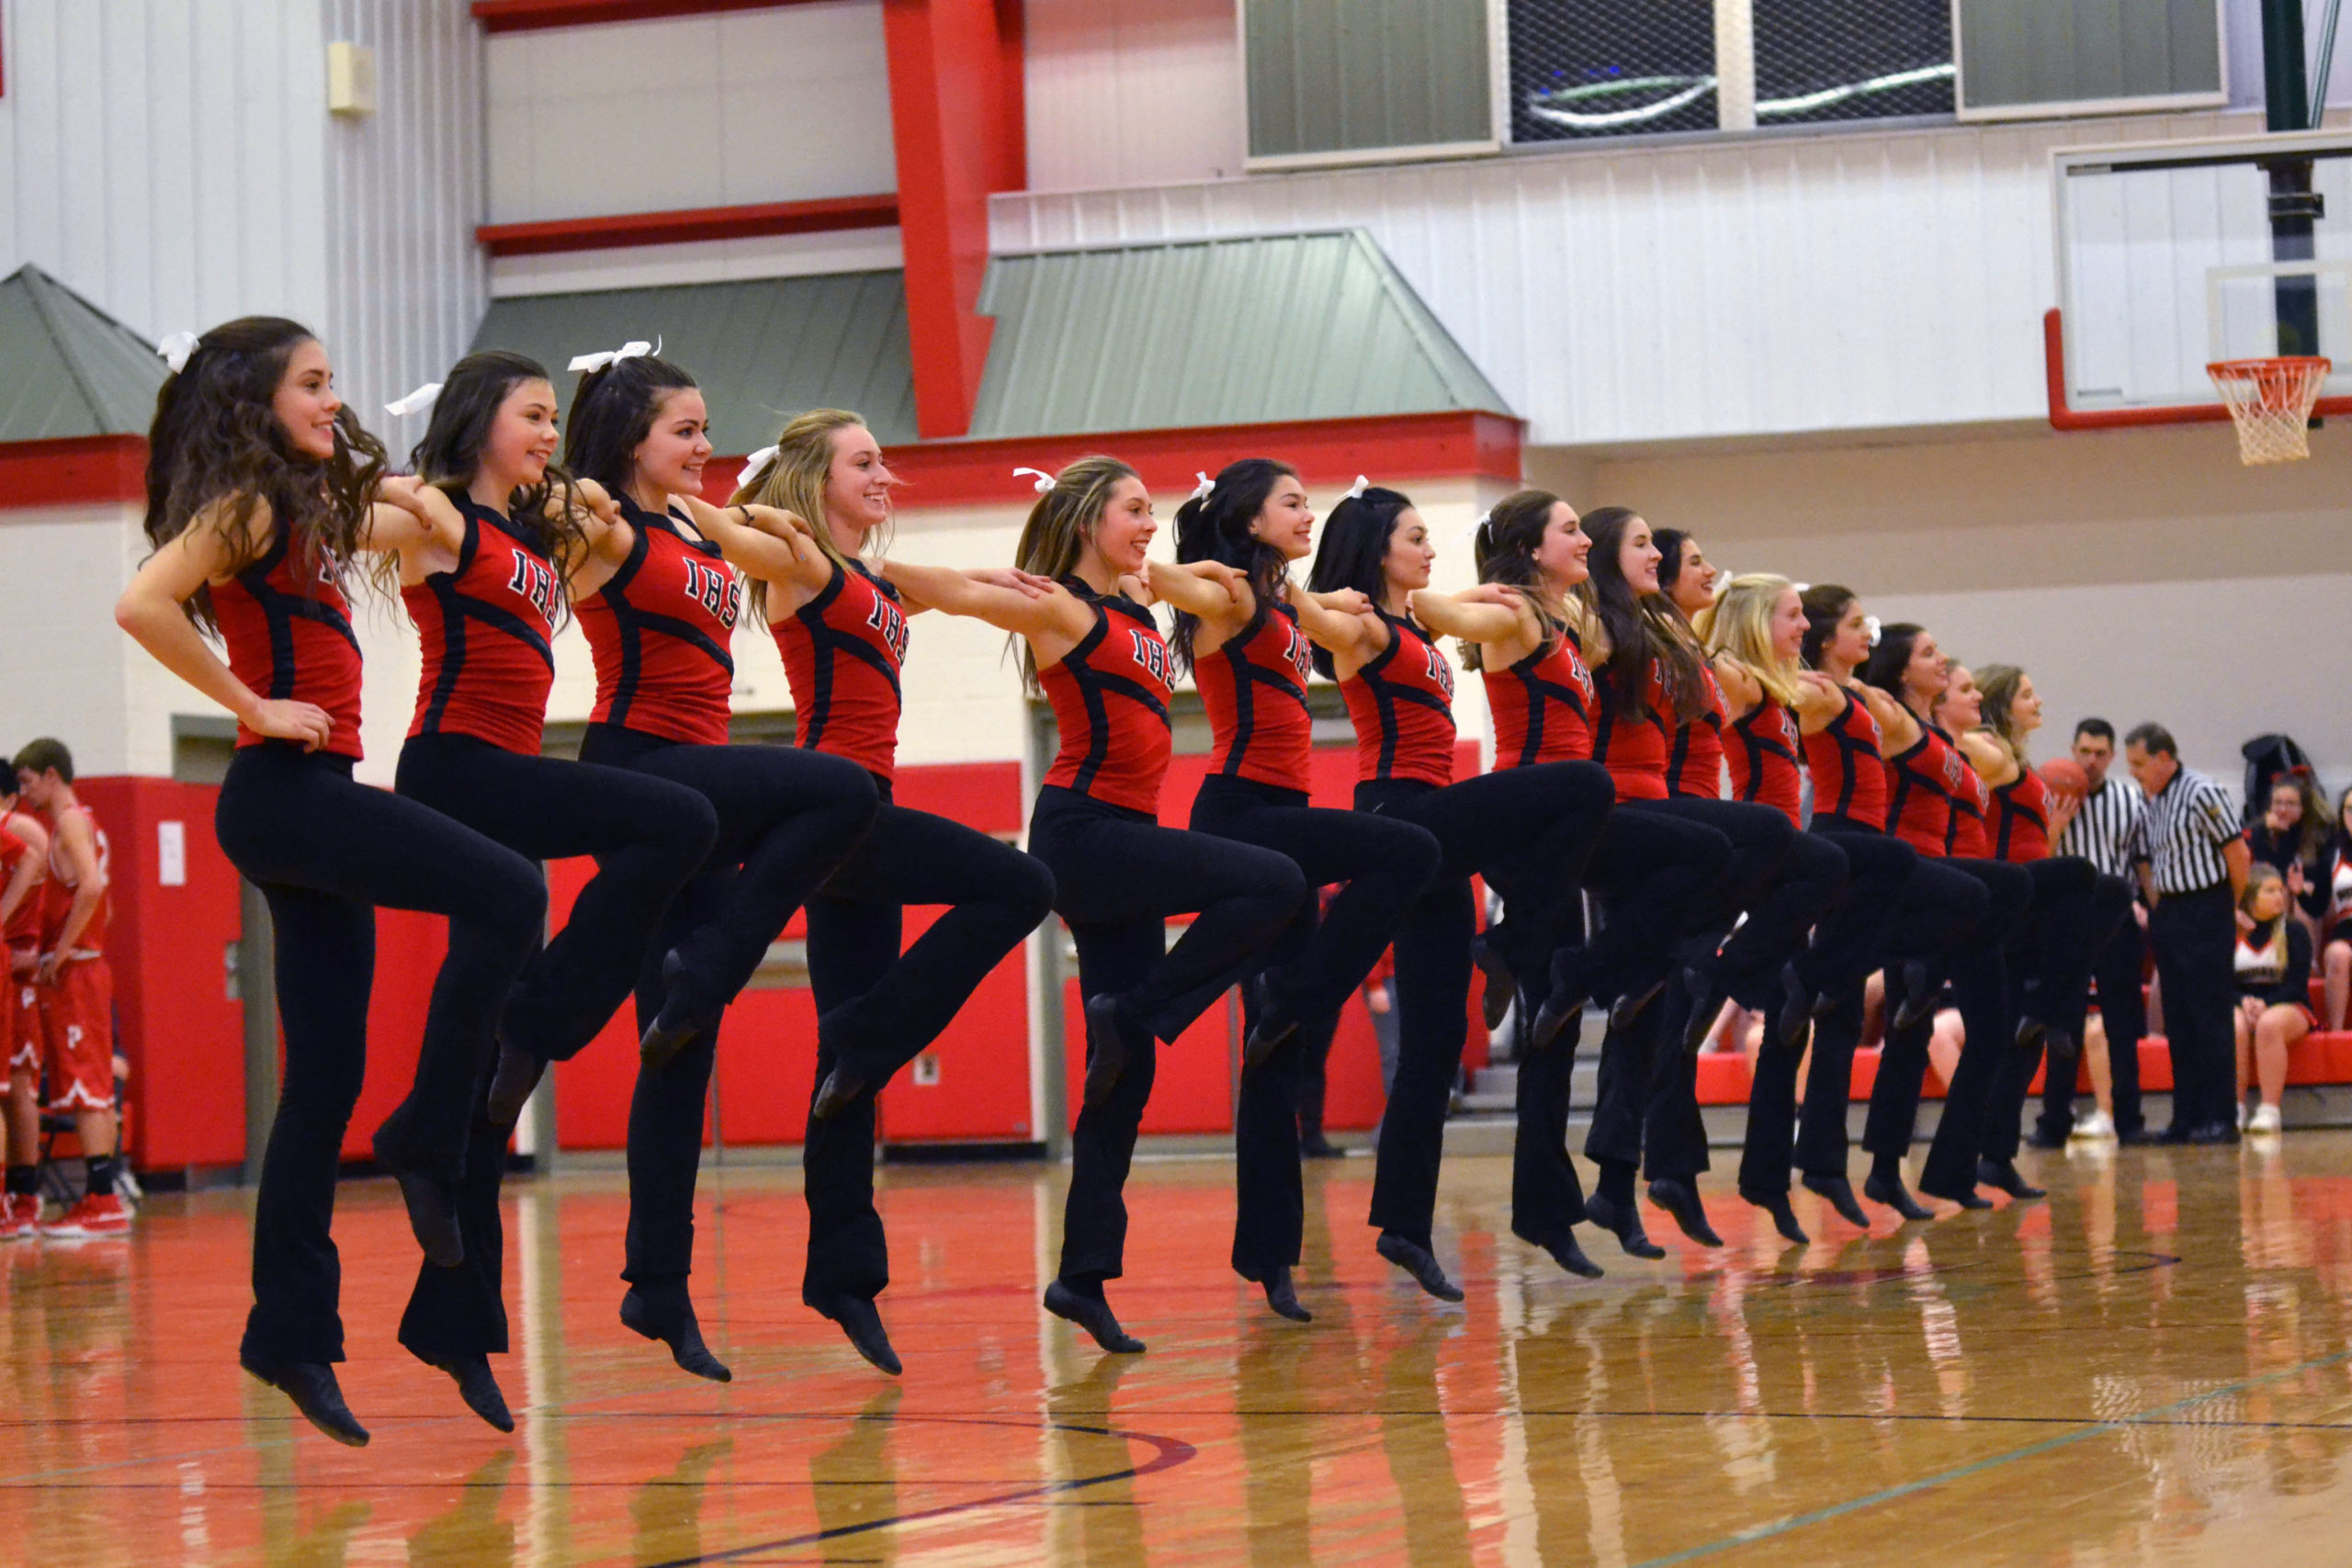 Dance Team stepping to a new beat